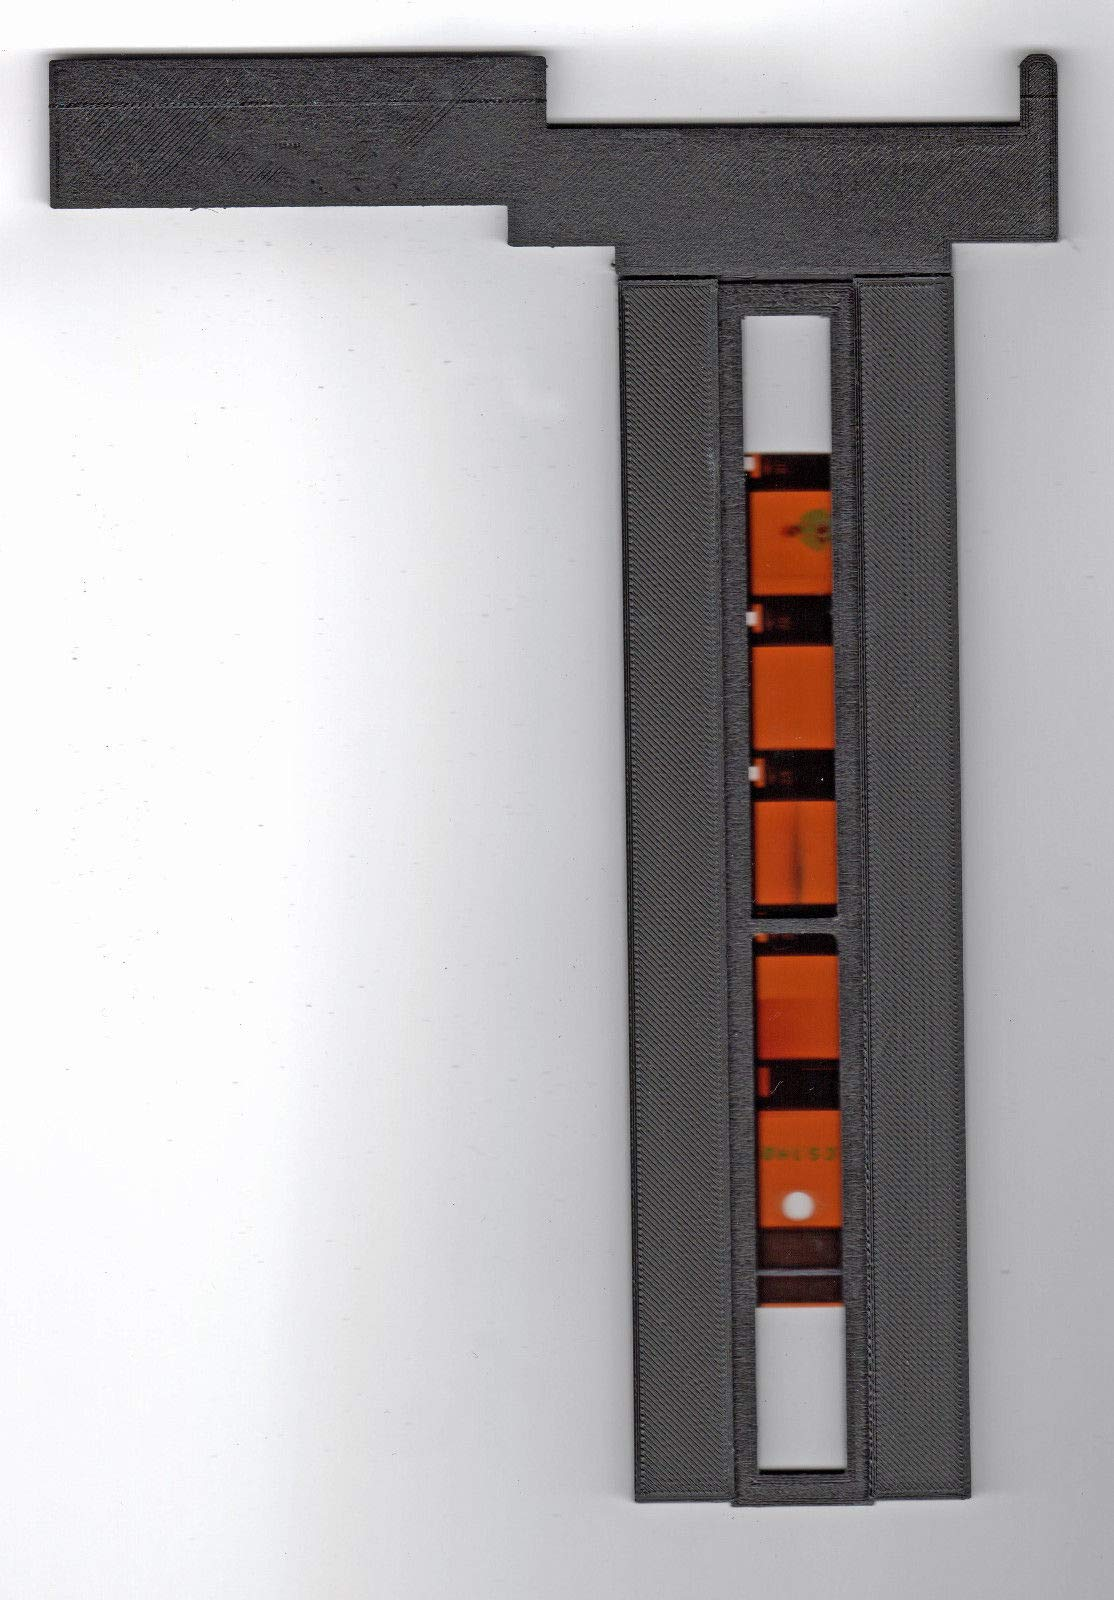 110 Film Holder Compatible with V500 and 4490 Film scanners by Negative Solutions Film Holders